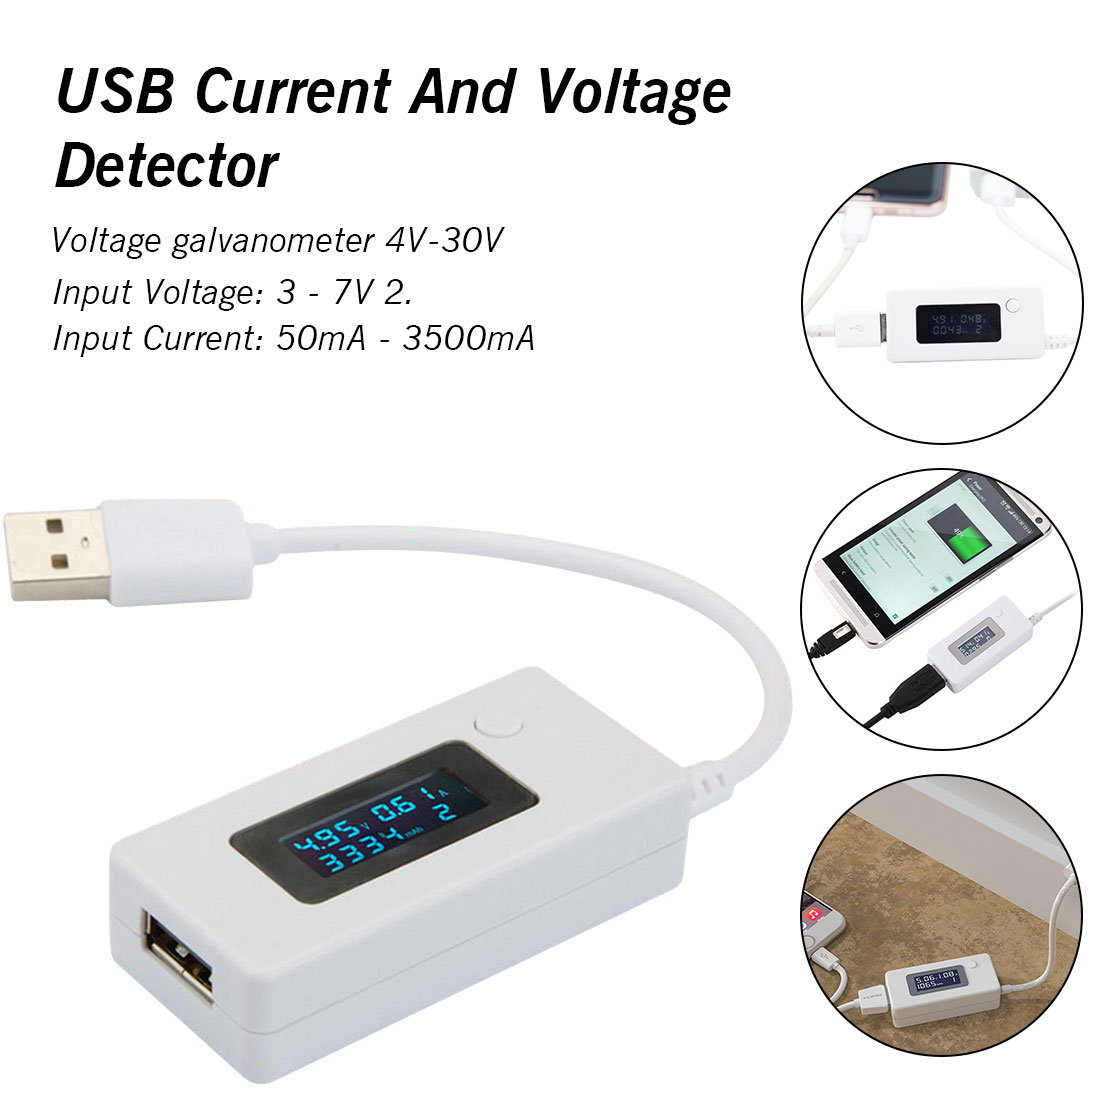 USB Current And Voltage Detector LCD Digital Phone USB Tester Portable Battery Detector Battery Capacity Tester